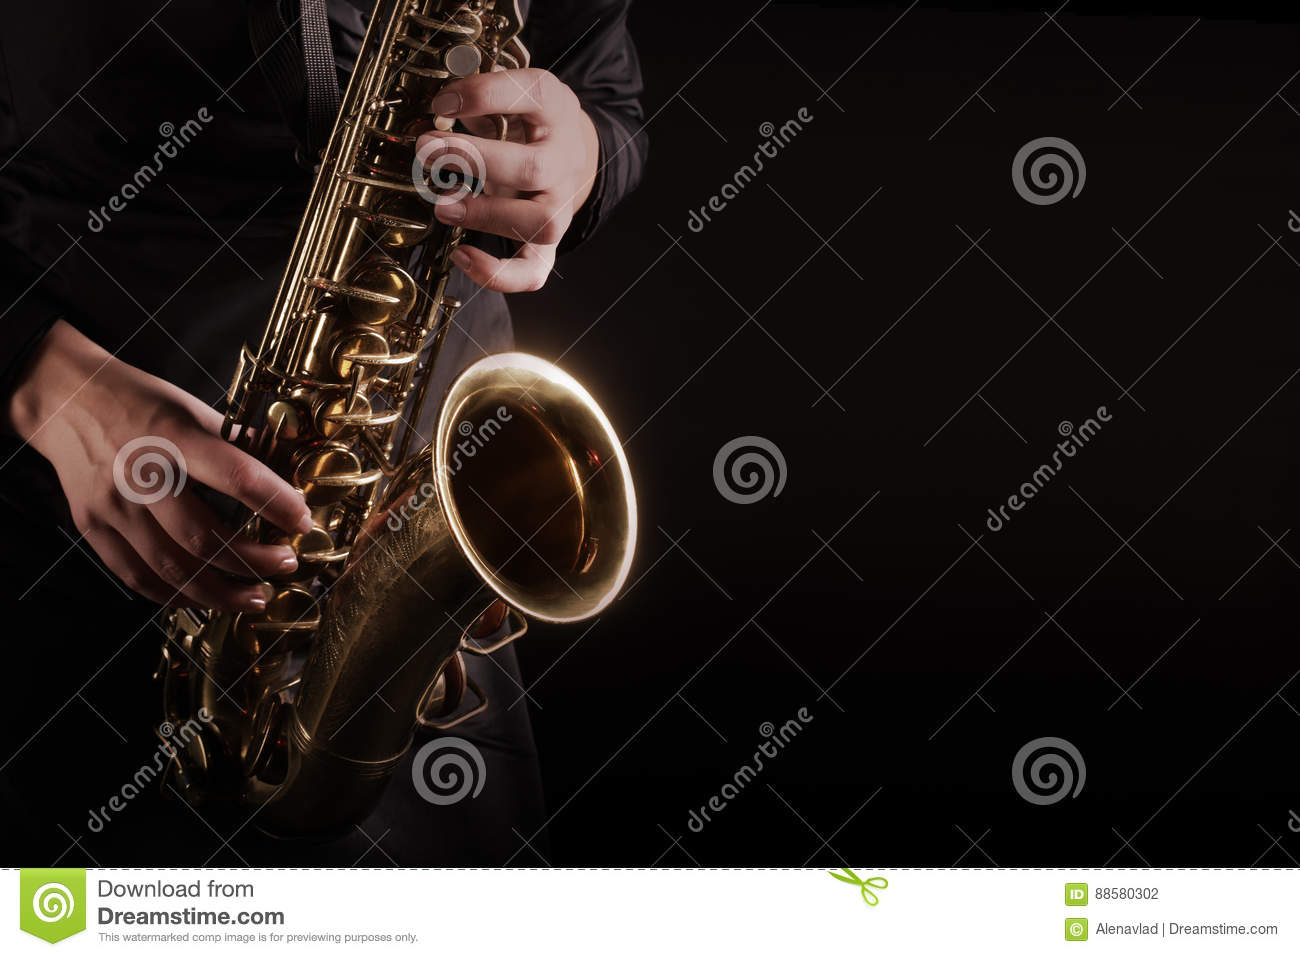 Saxophone Player Saxophonist playing jazz music